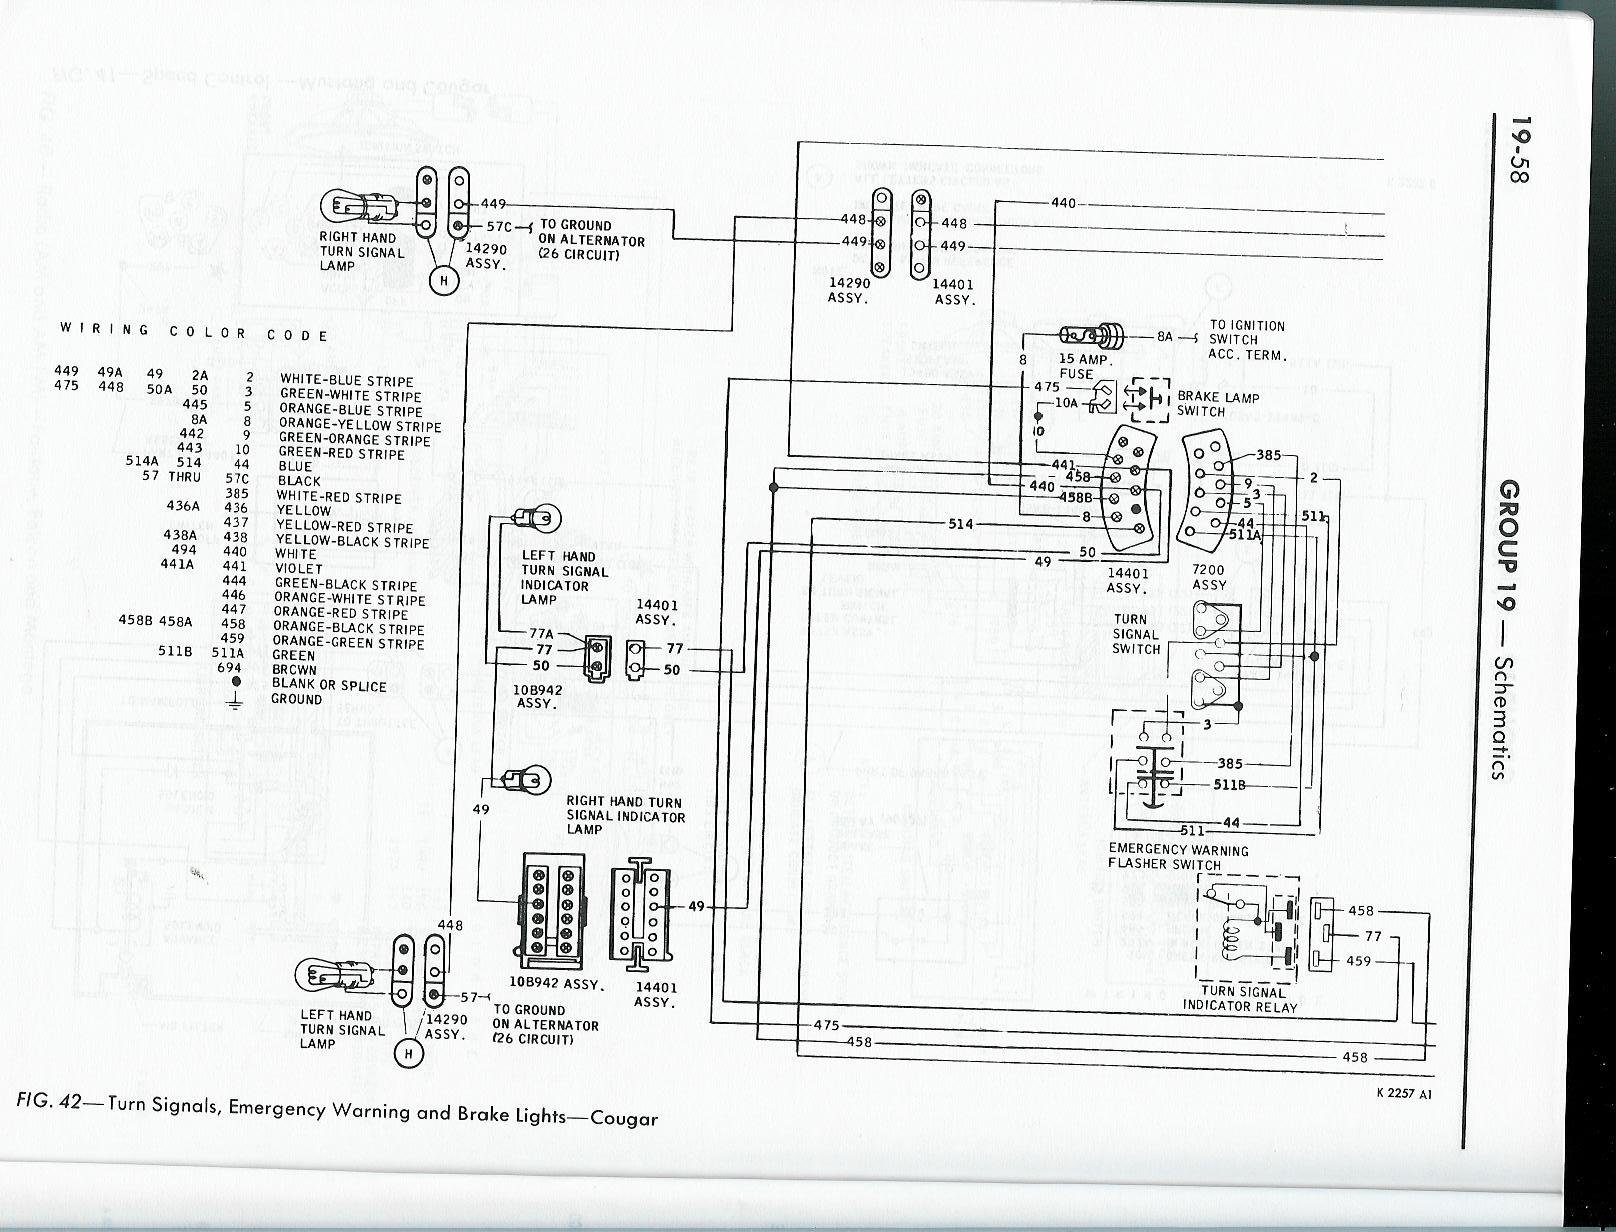 68 gto ignition switch wiring diagram